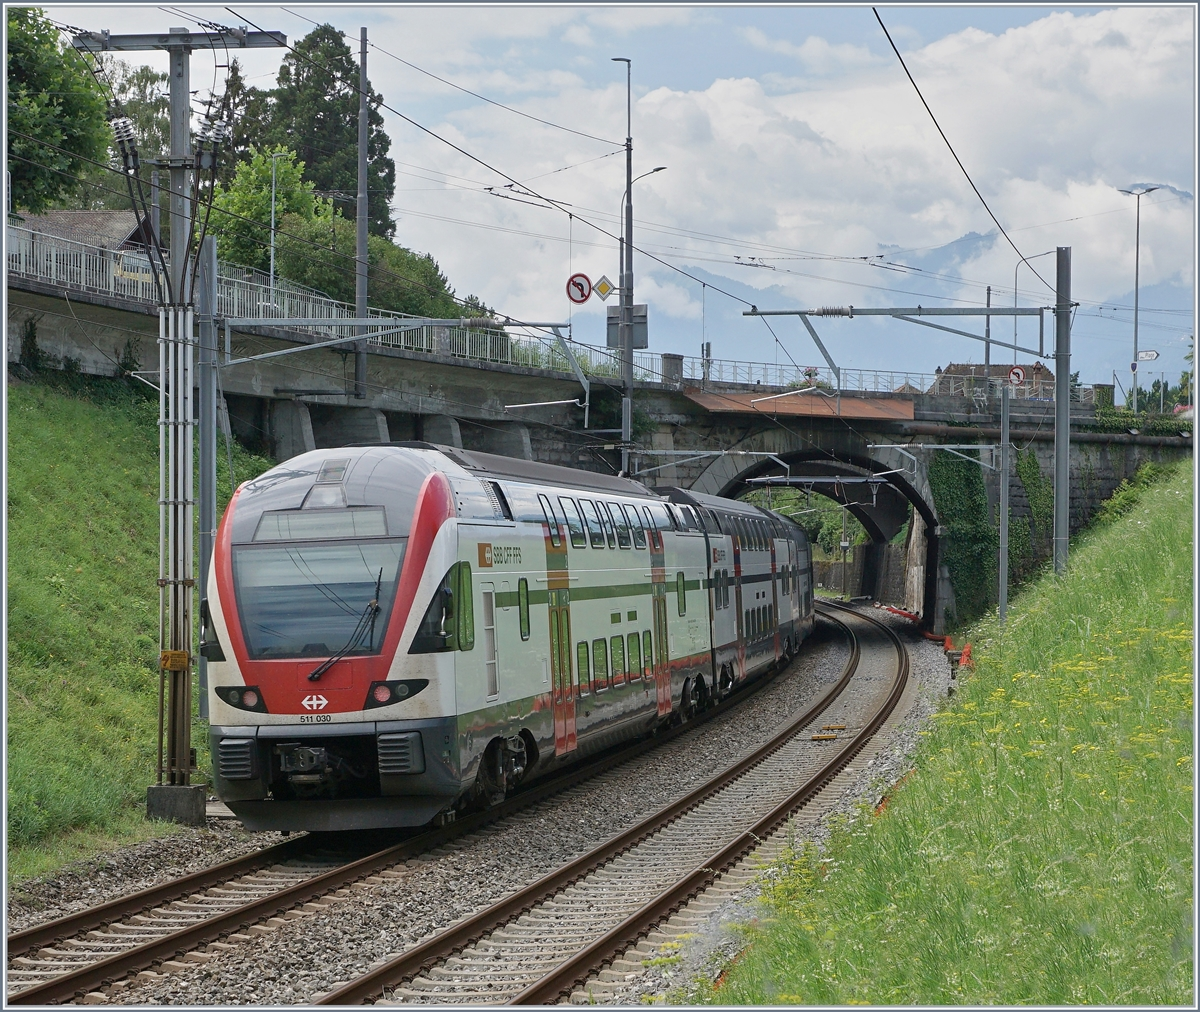 The SBB RABe 511 030 on the way toSt-MAurice by Villeneuve. 